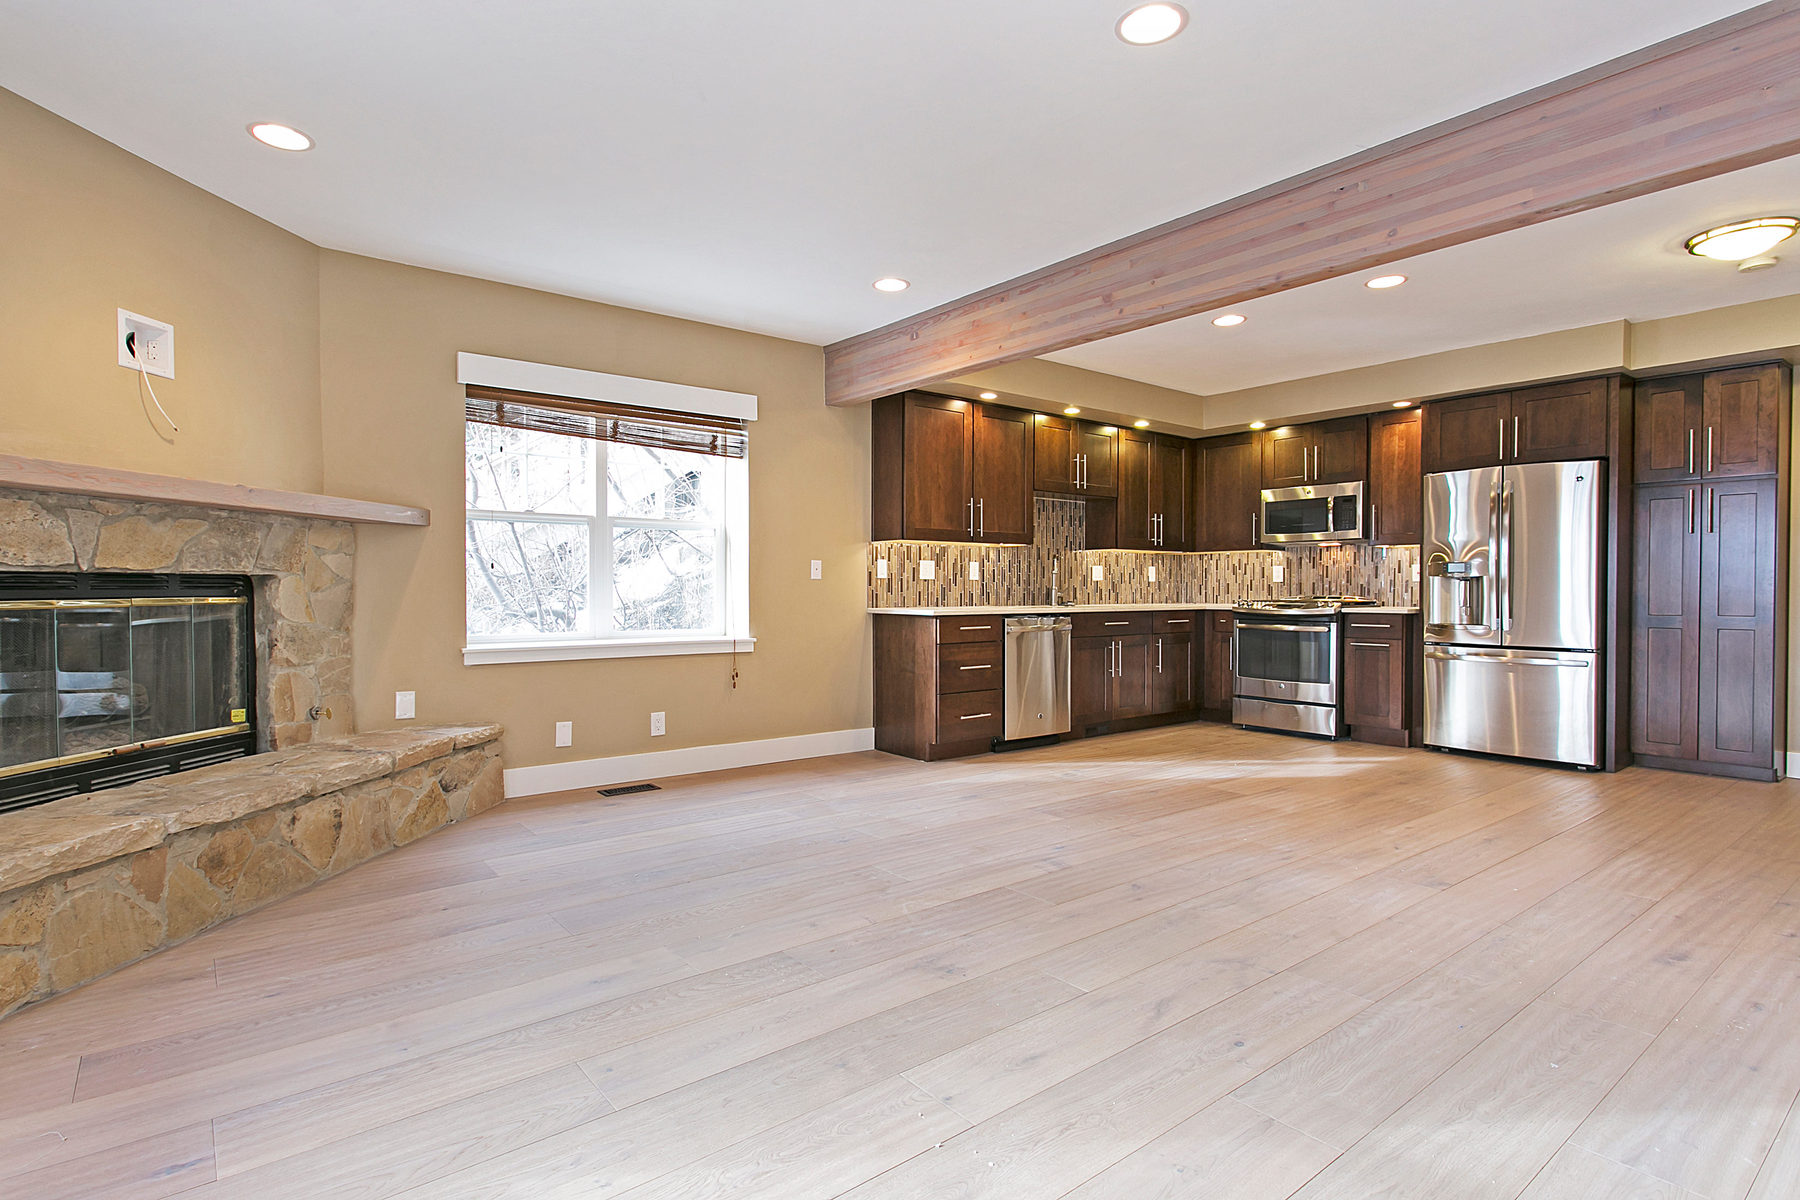 Property For Sale at Wonderful Remodel on Daly!